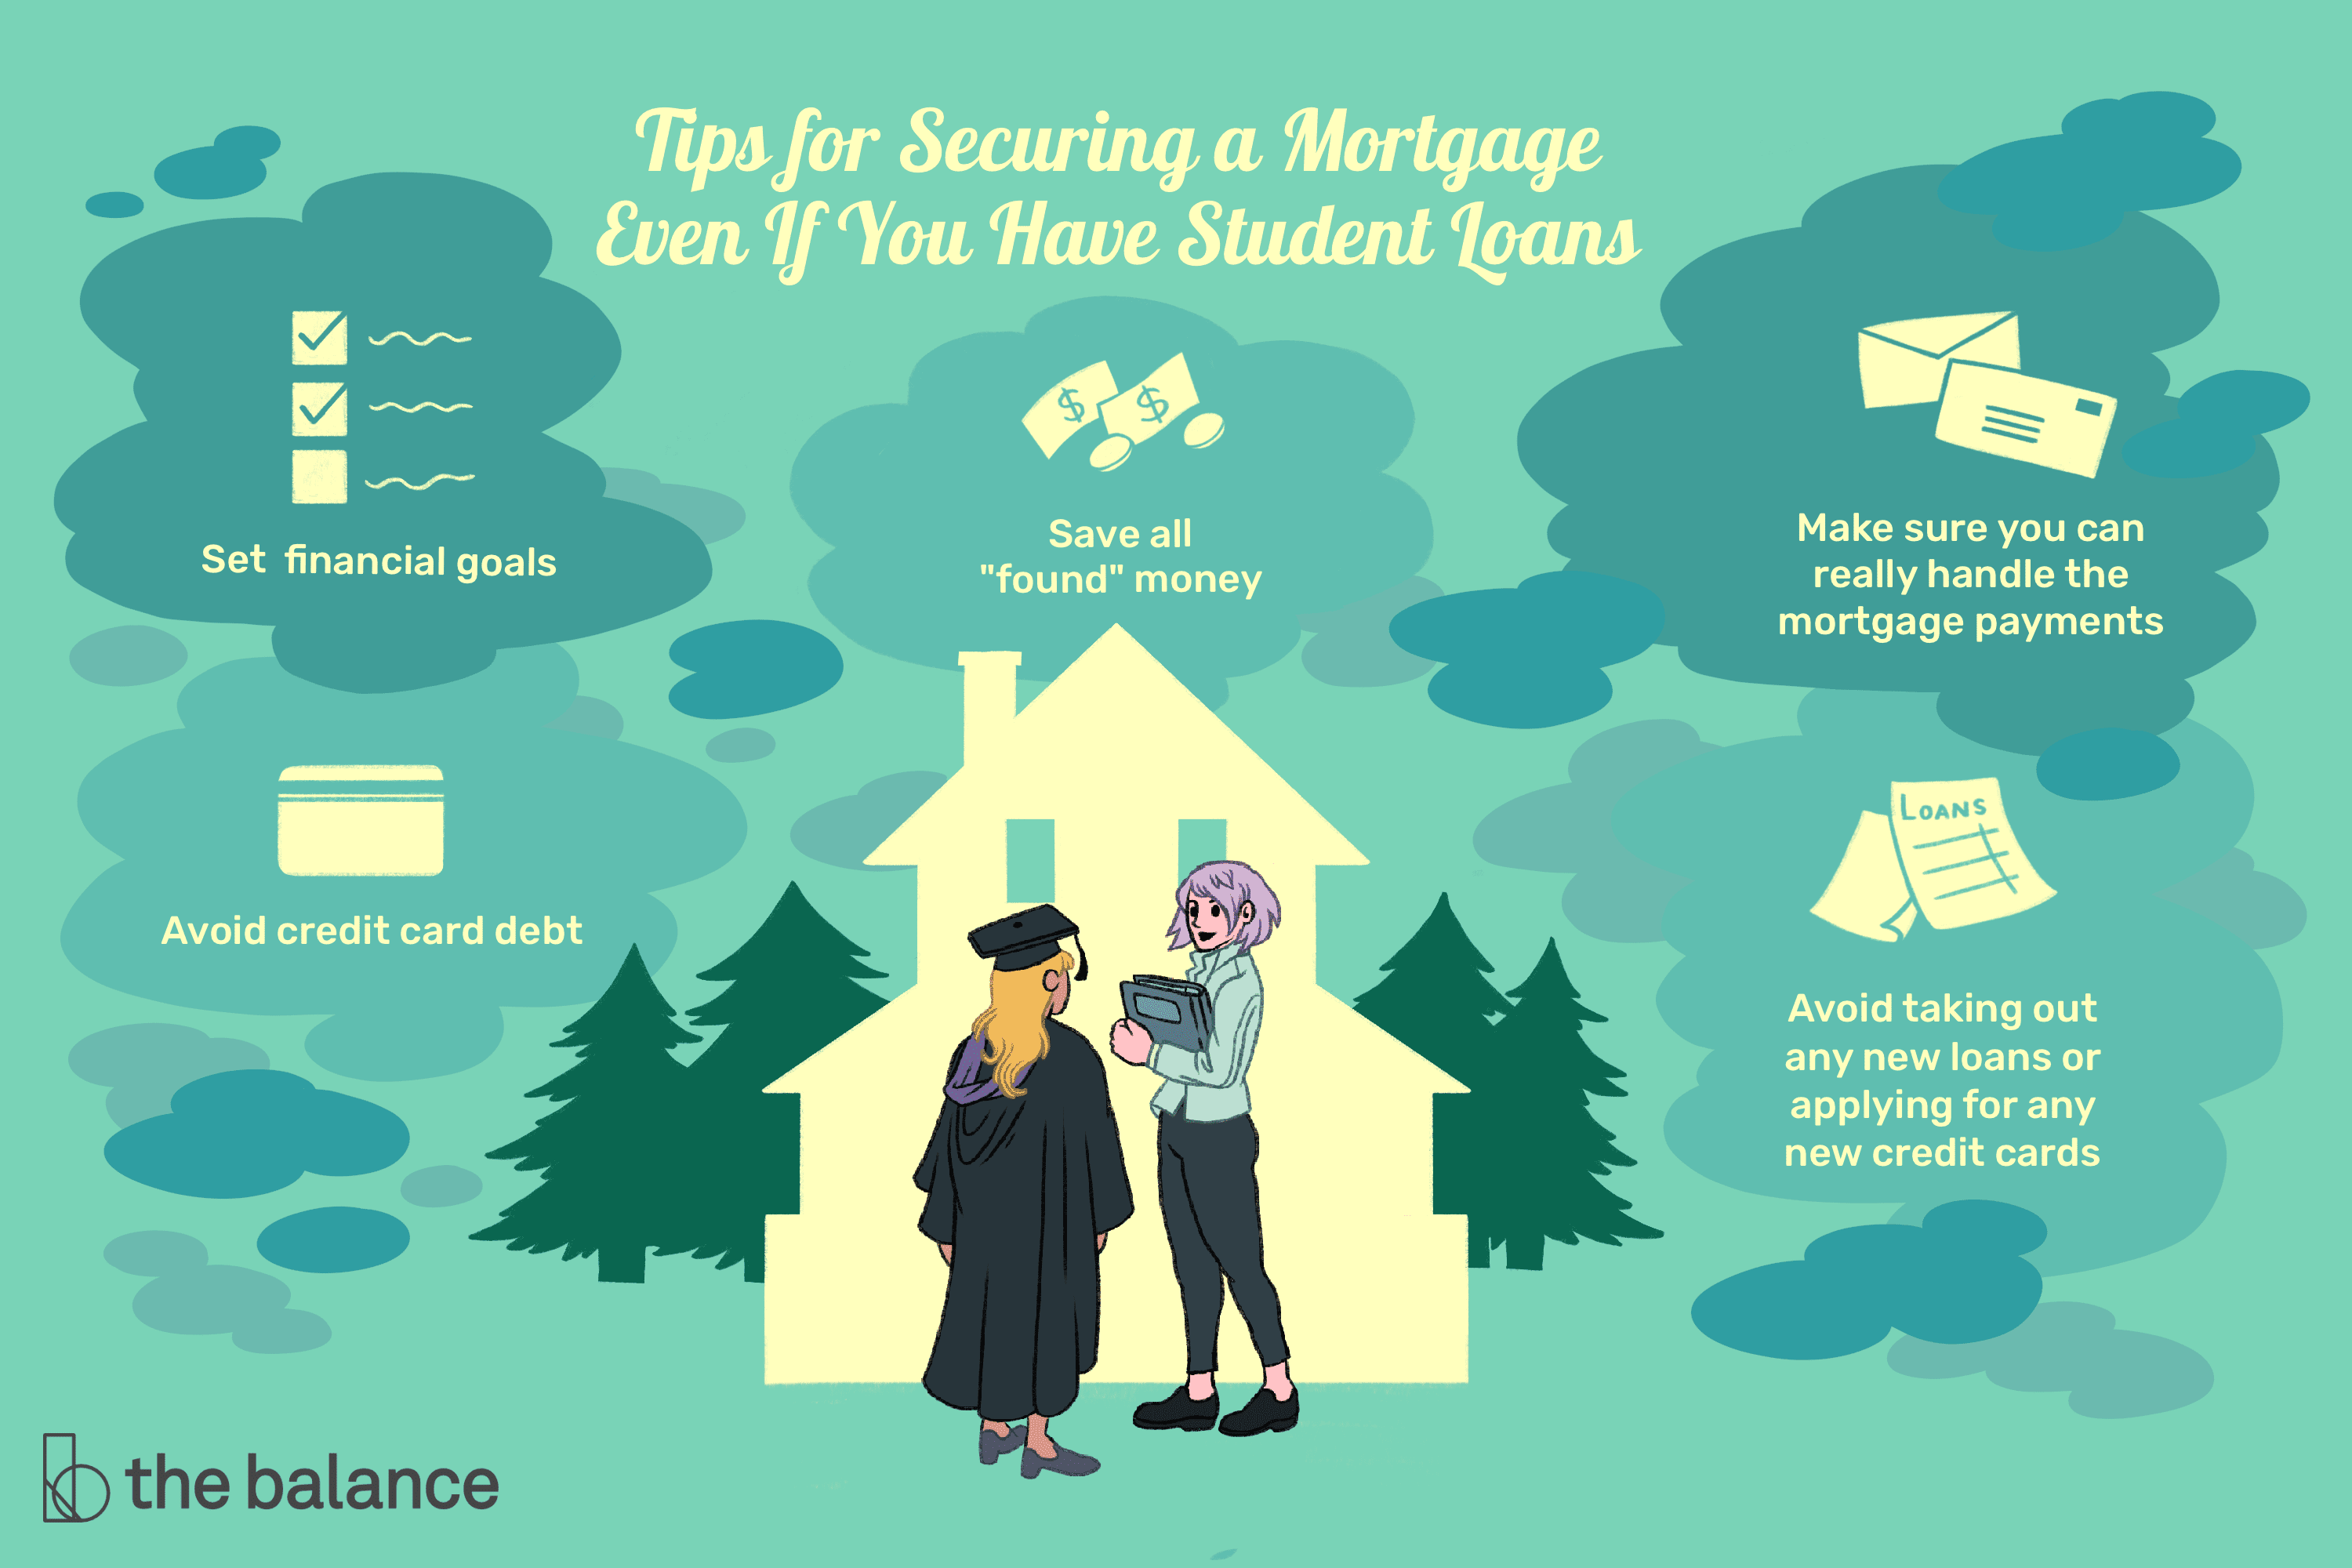 10 Strategies to Get a Mortgage, Even If You Have Student